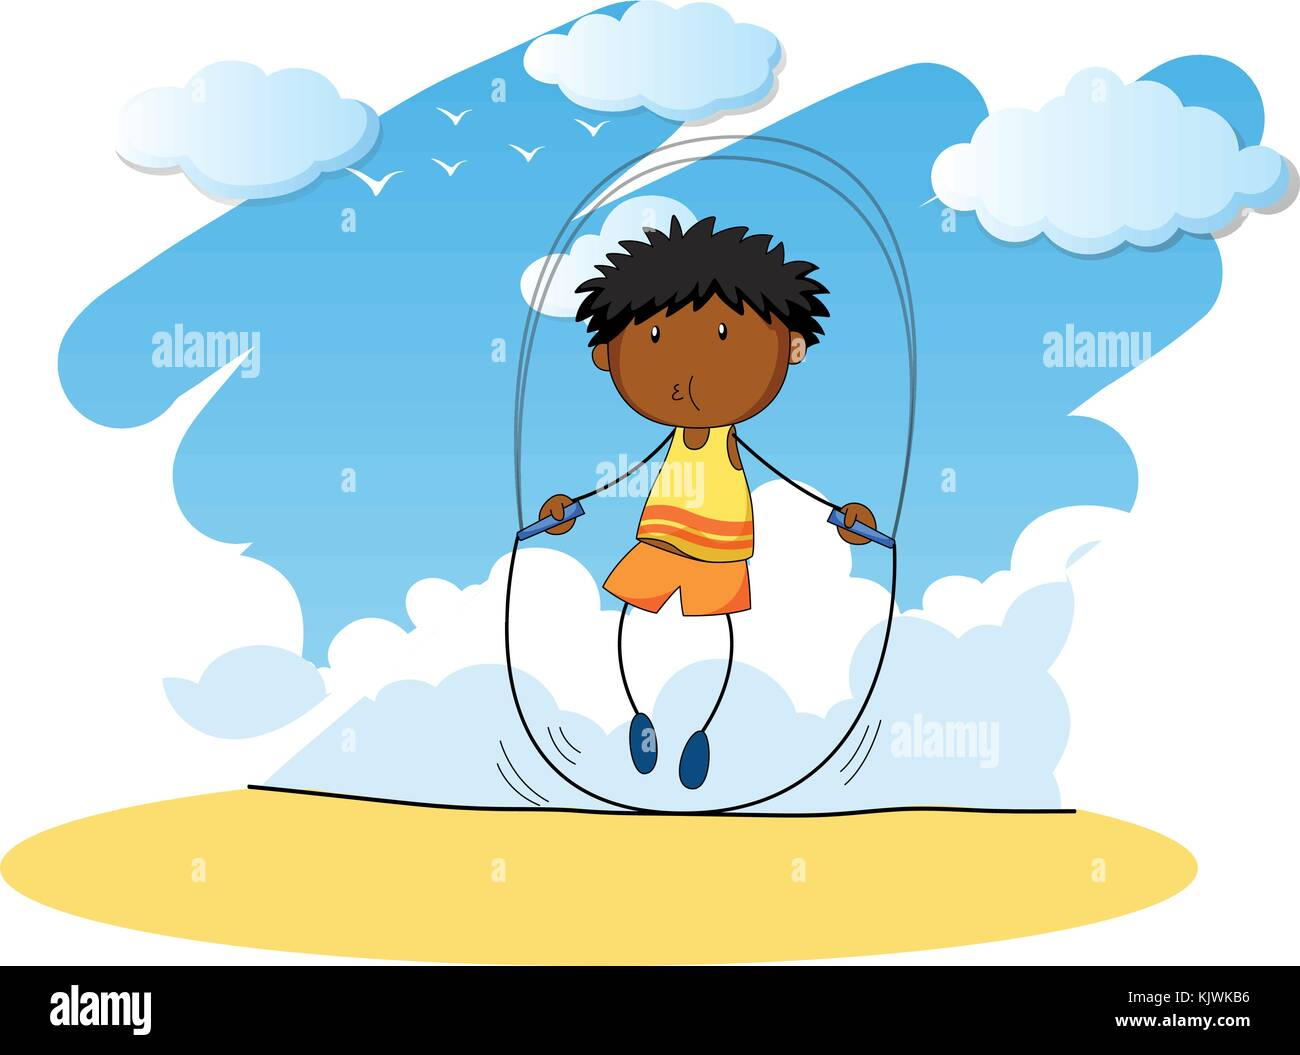 Boy jumping rope at day time illustration - Stock Vector